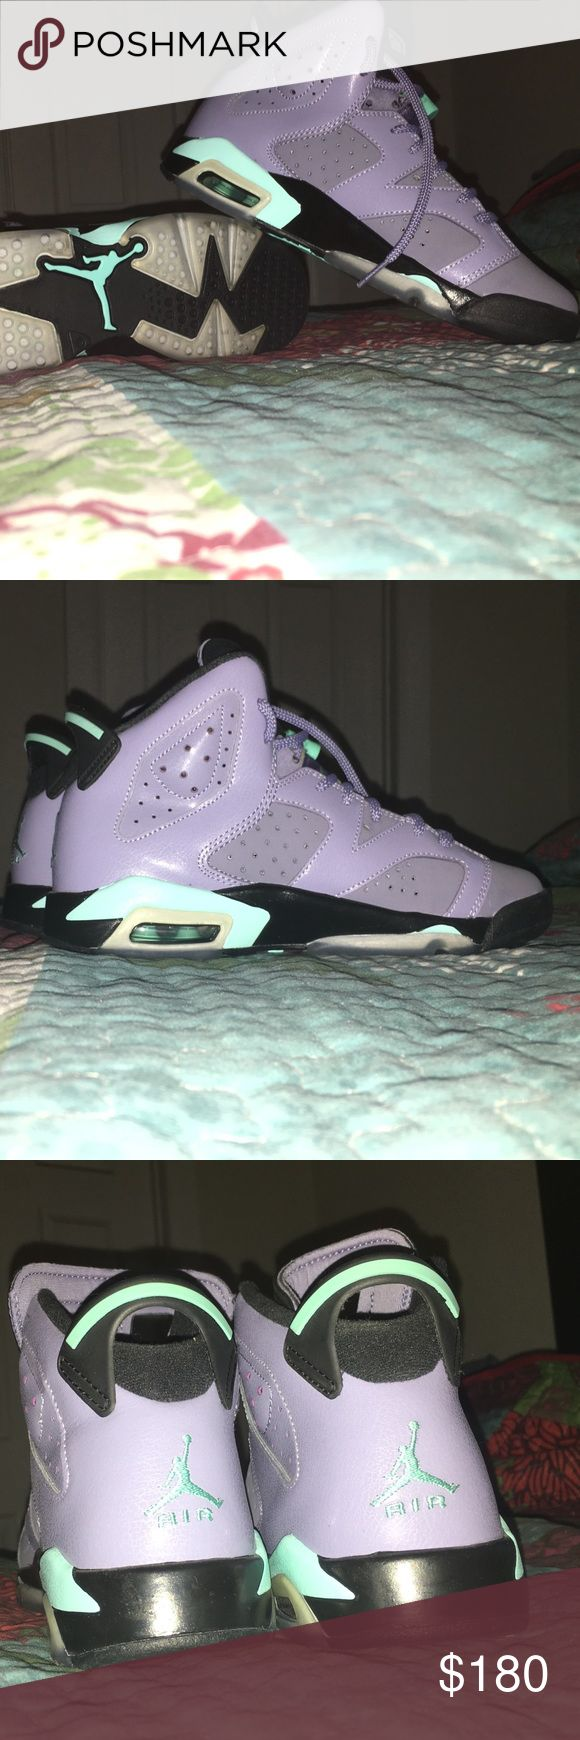 Women's Jordan's Retro 6 Gray with mint green. Worn only once, so it is brand new! Jordan Shoes Sneakers